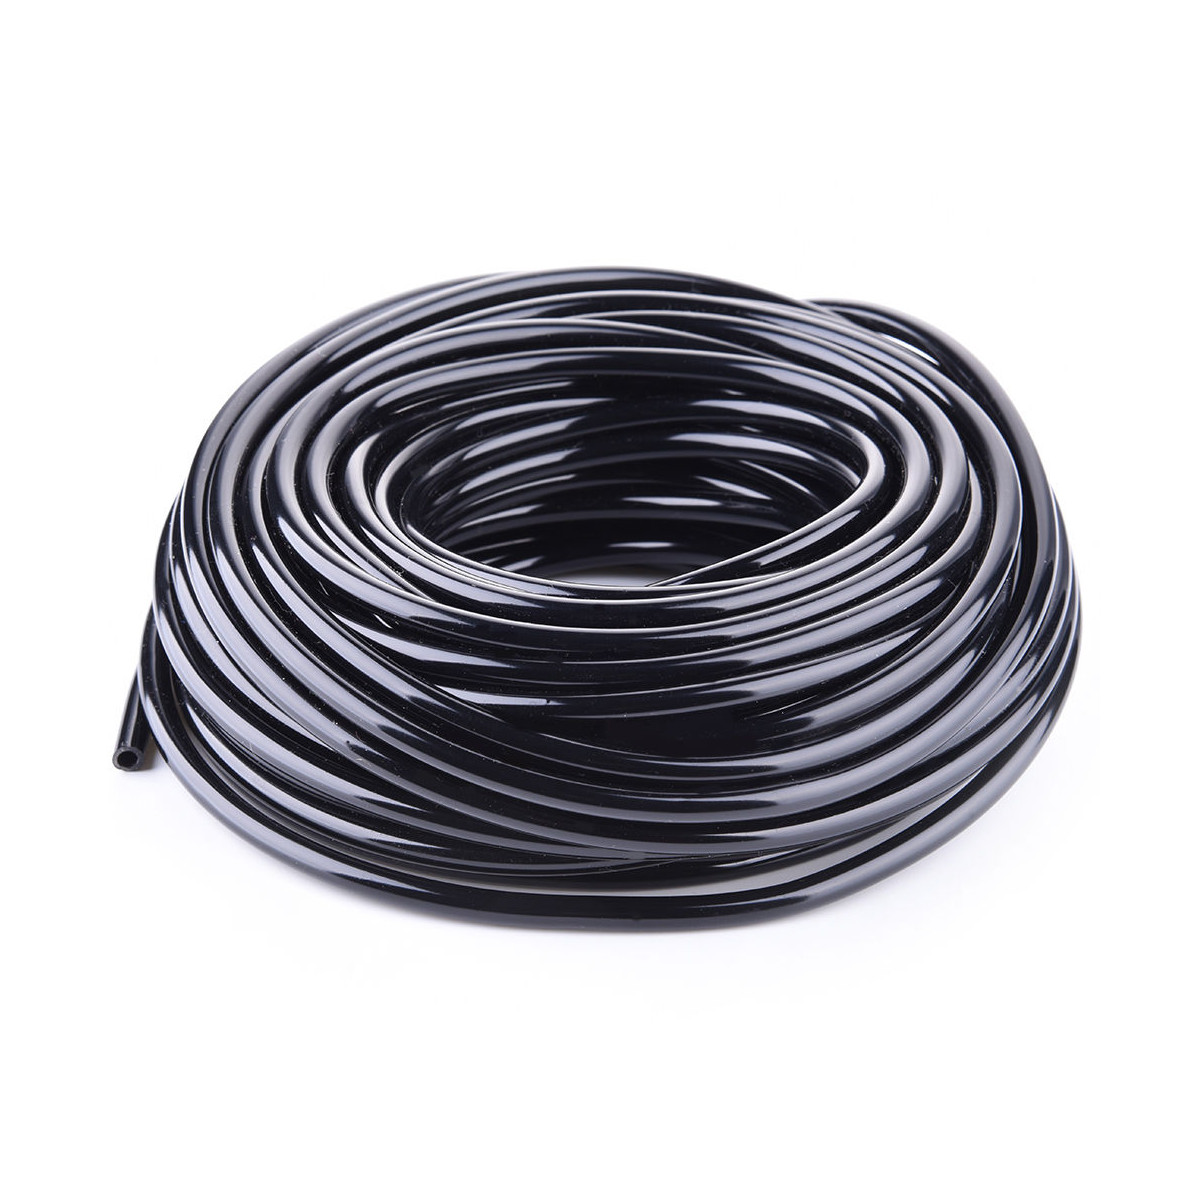 50m Water Pipe Tubing Hose Pipe 4/7mm Micro Drip Garden